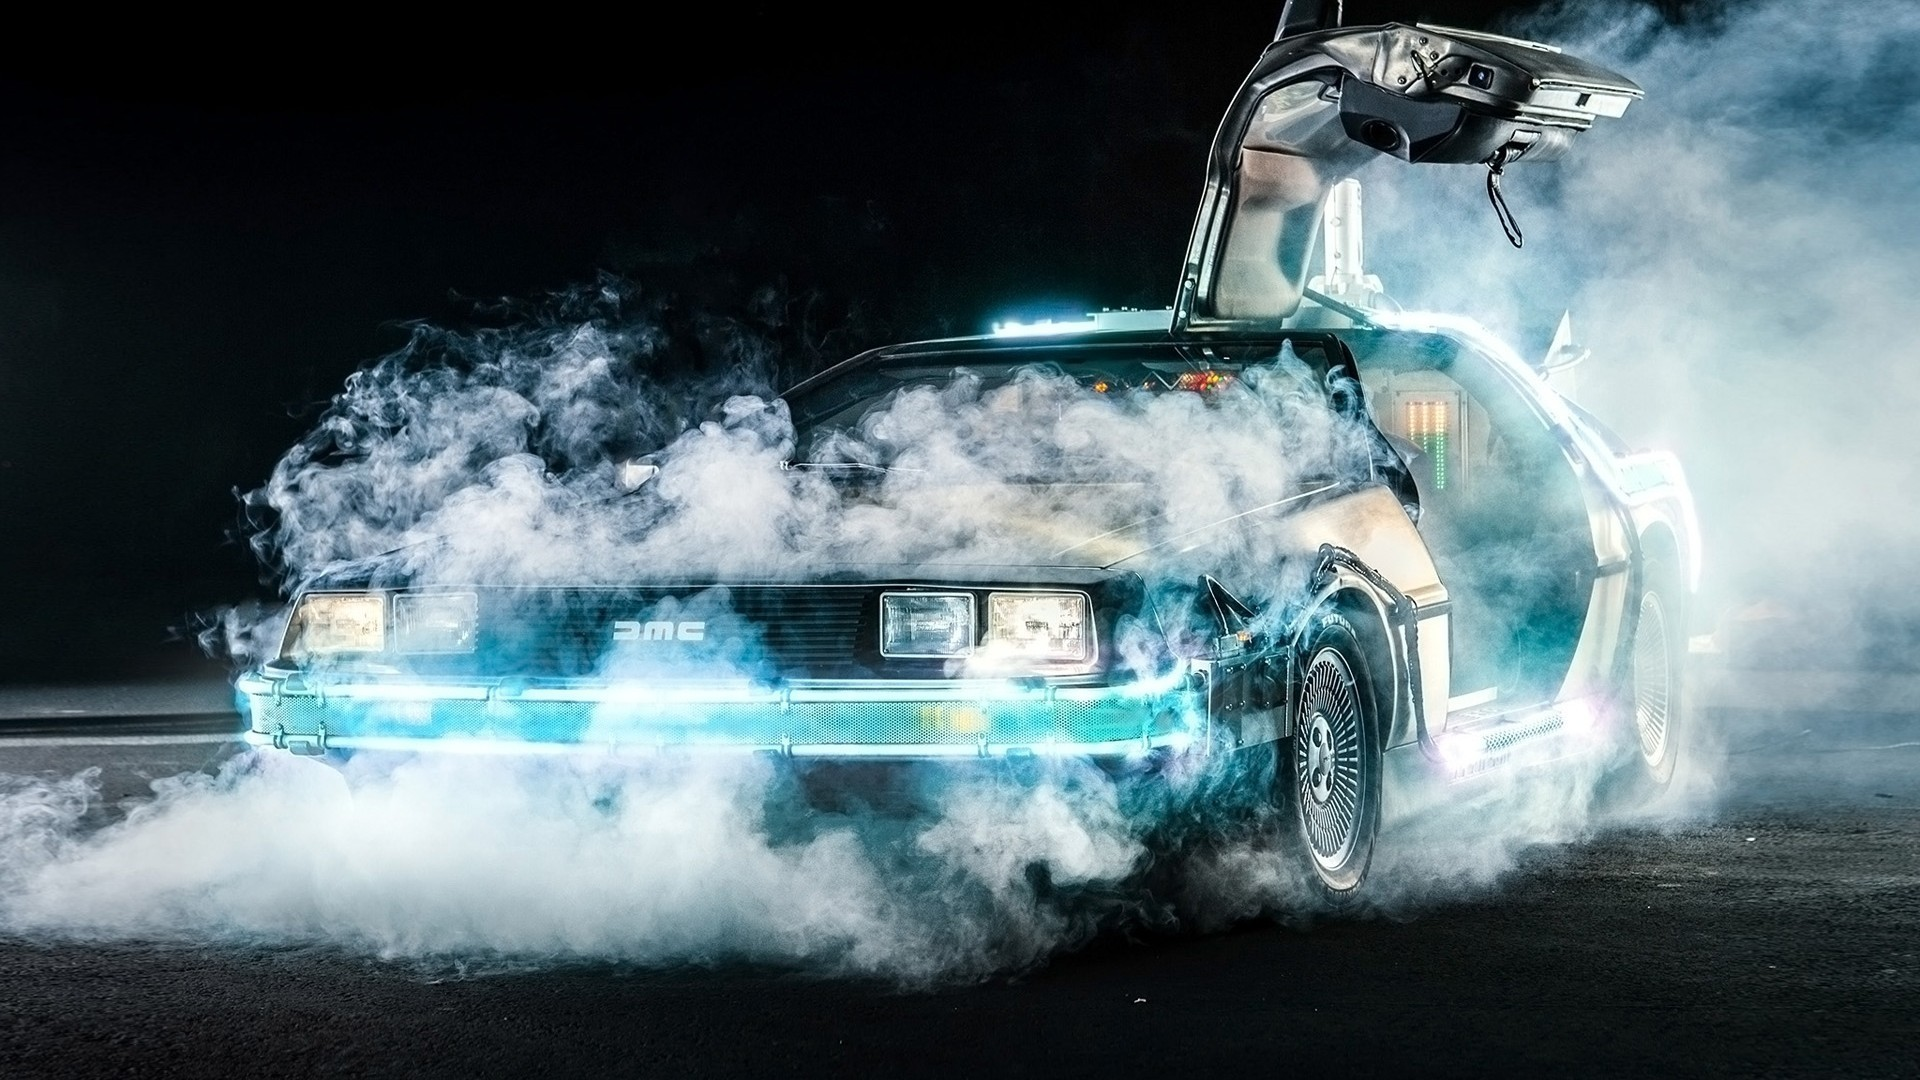 1920x1080 Back To The Future, DeLorean, Time Travel, Car, Movies, Smoke Wallpapers HD  / Desktop and Mobile Backgrounds